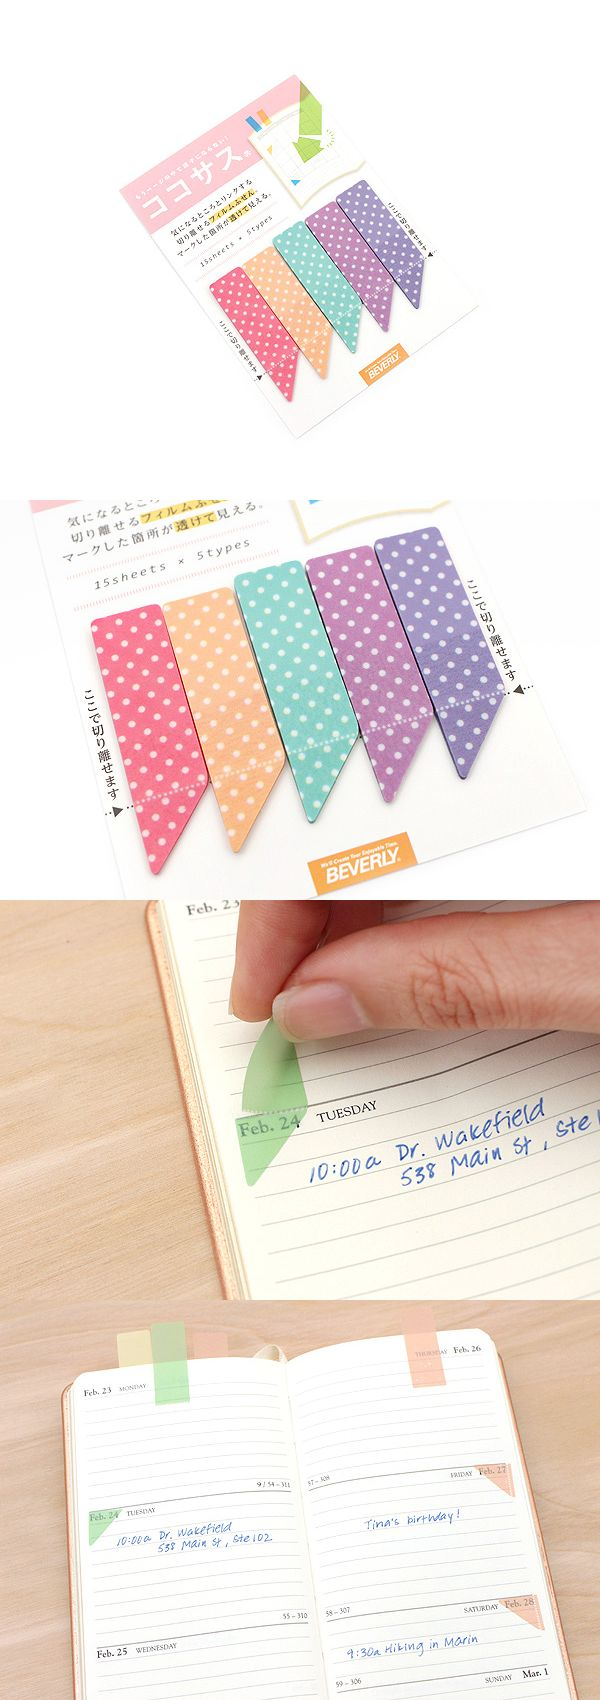 To use the Beverly Kokosasu markers, tear off the long part at the micro perforation and use it as a flag to bookmark the page. They're great to use with books, notes, calendars, magazines, and more.